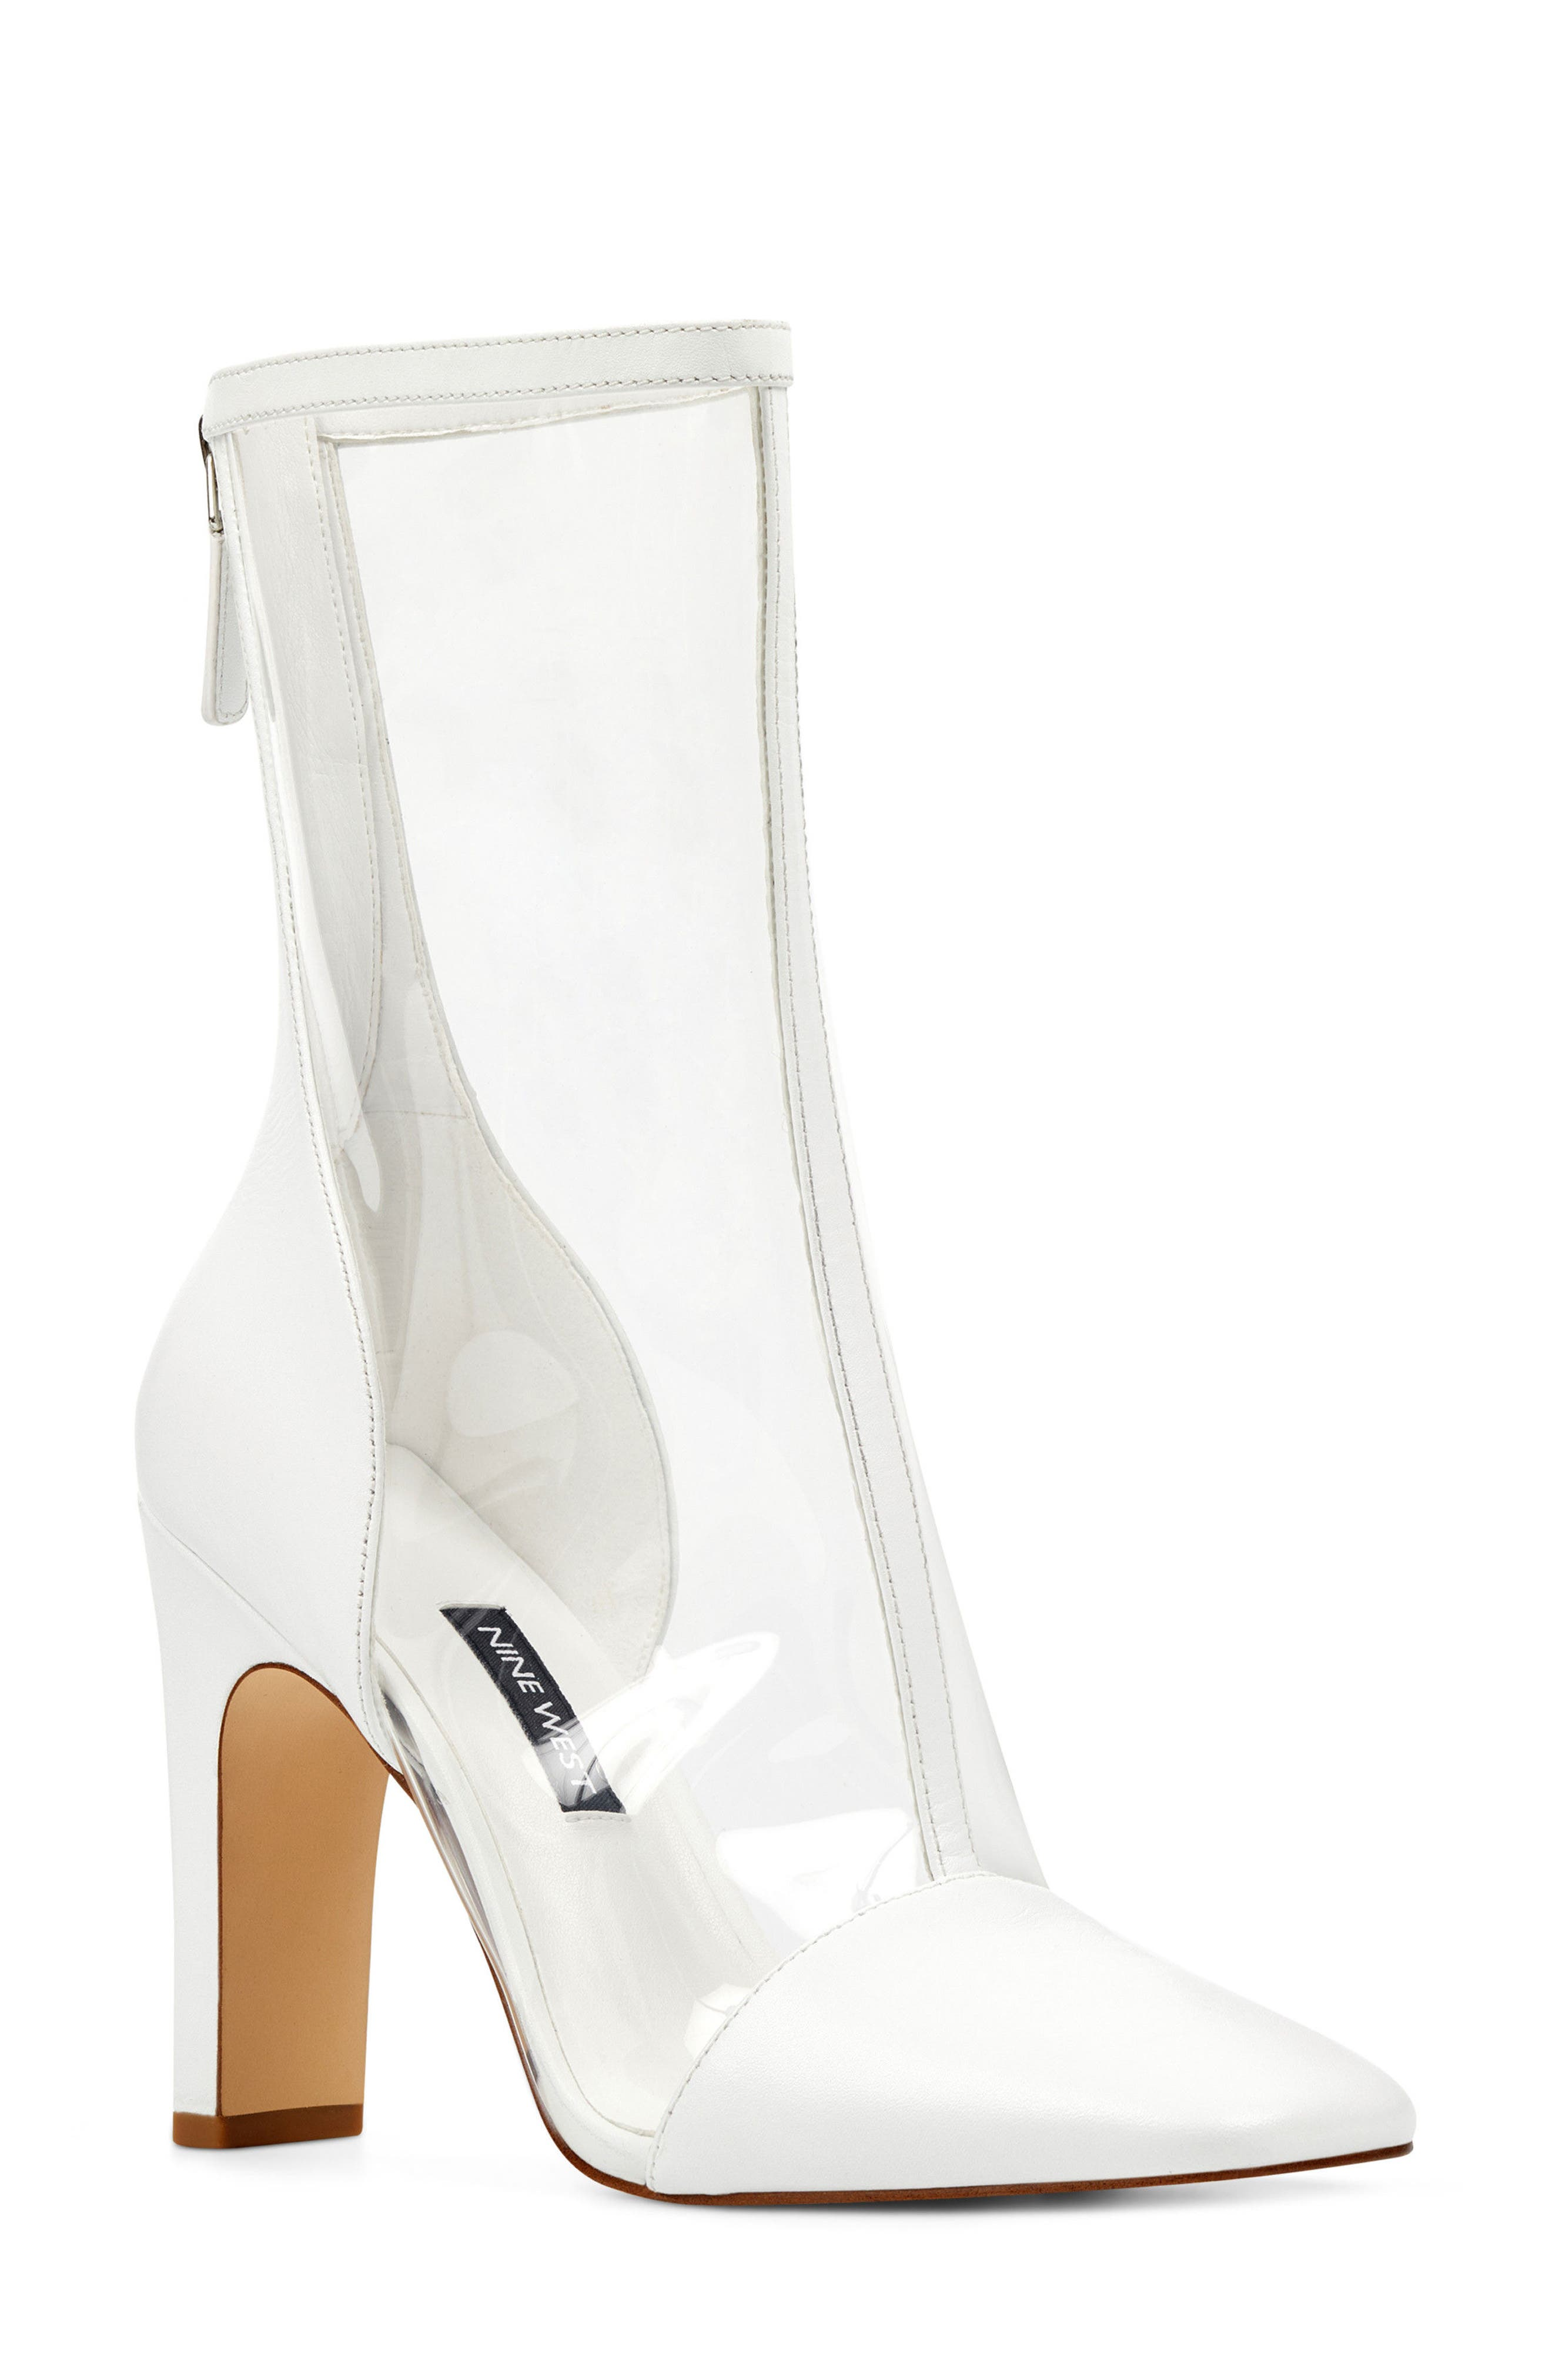 Nine West Quitend Boot, White